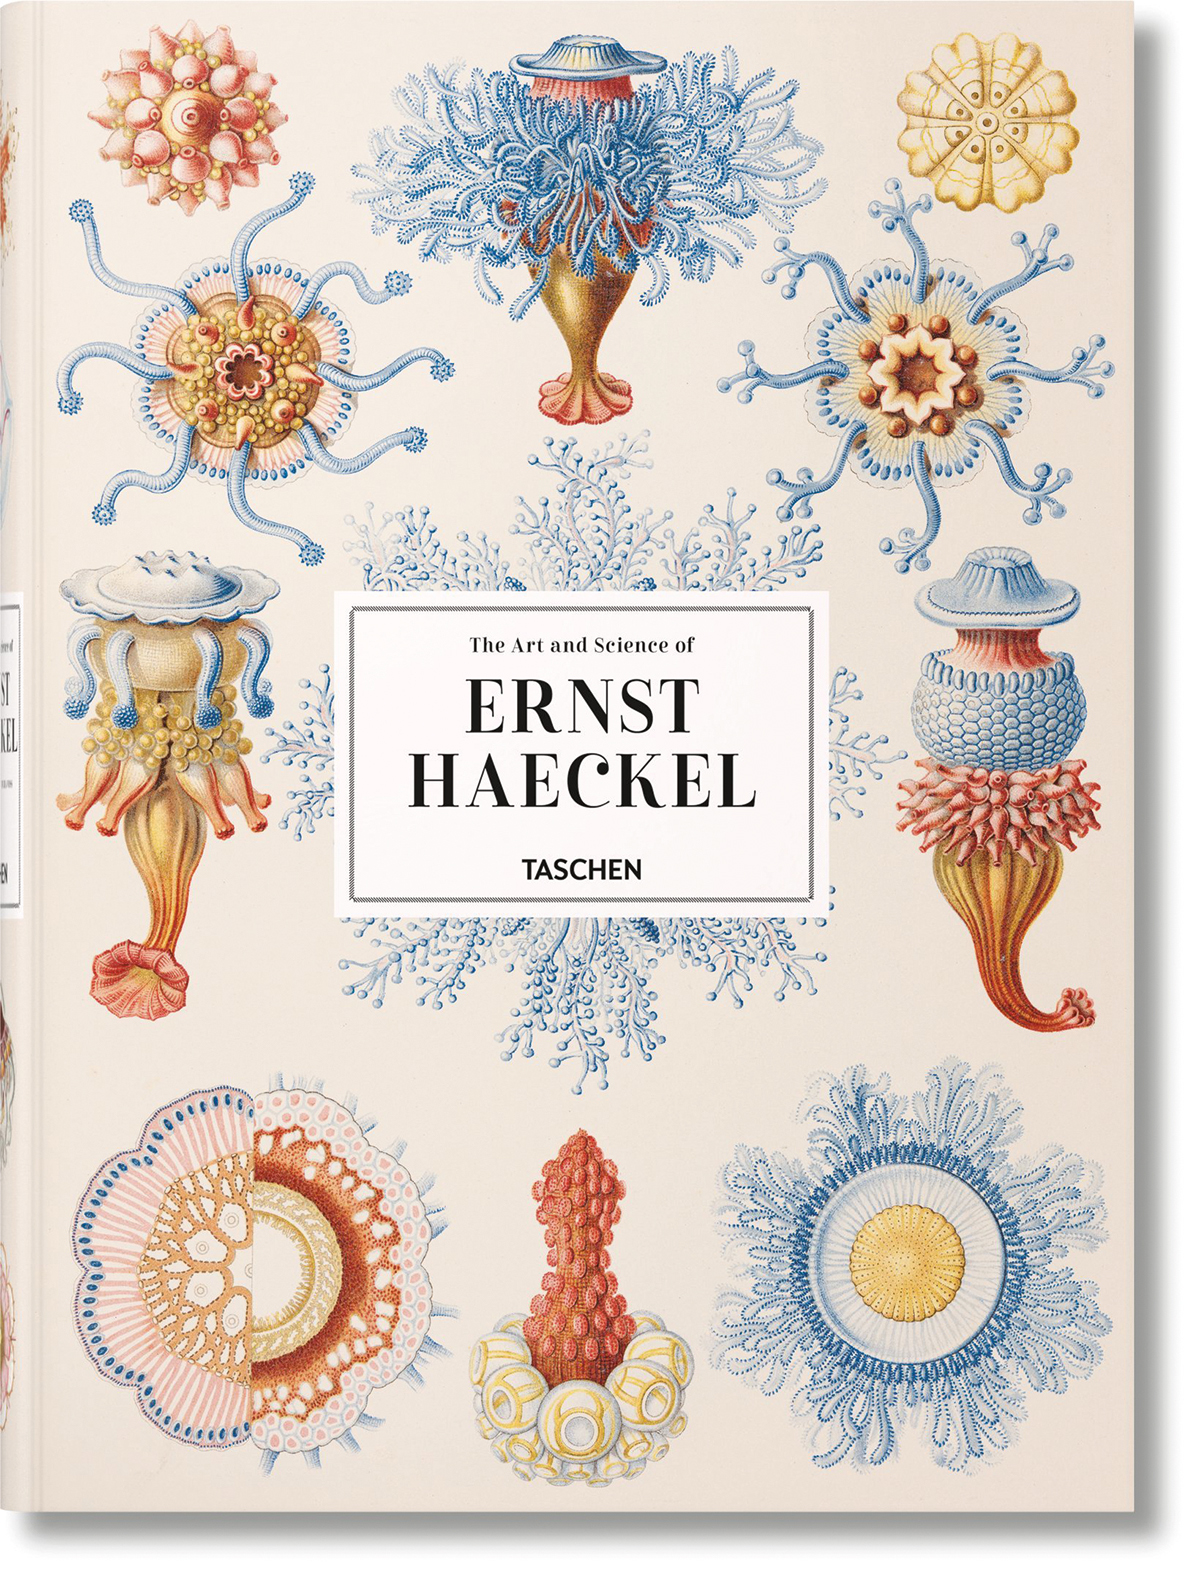 xl-haeckel-cover_01157